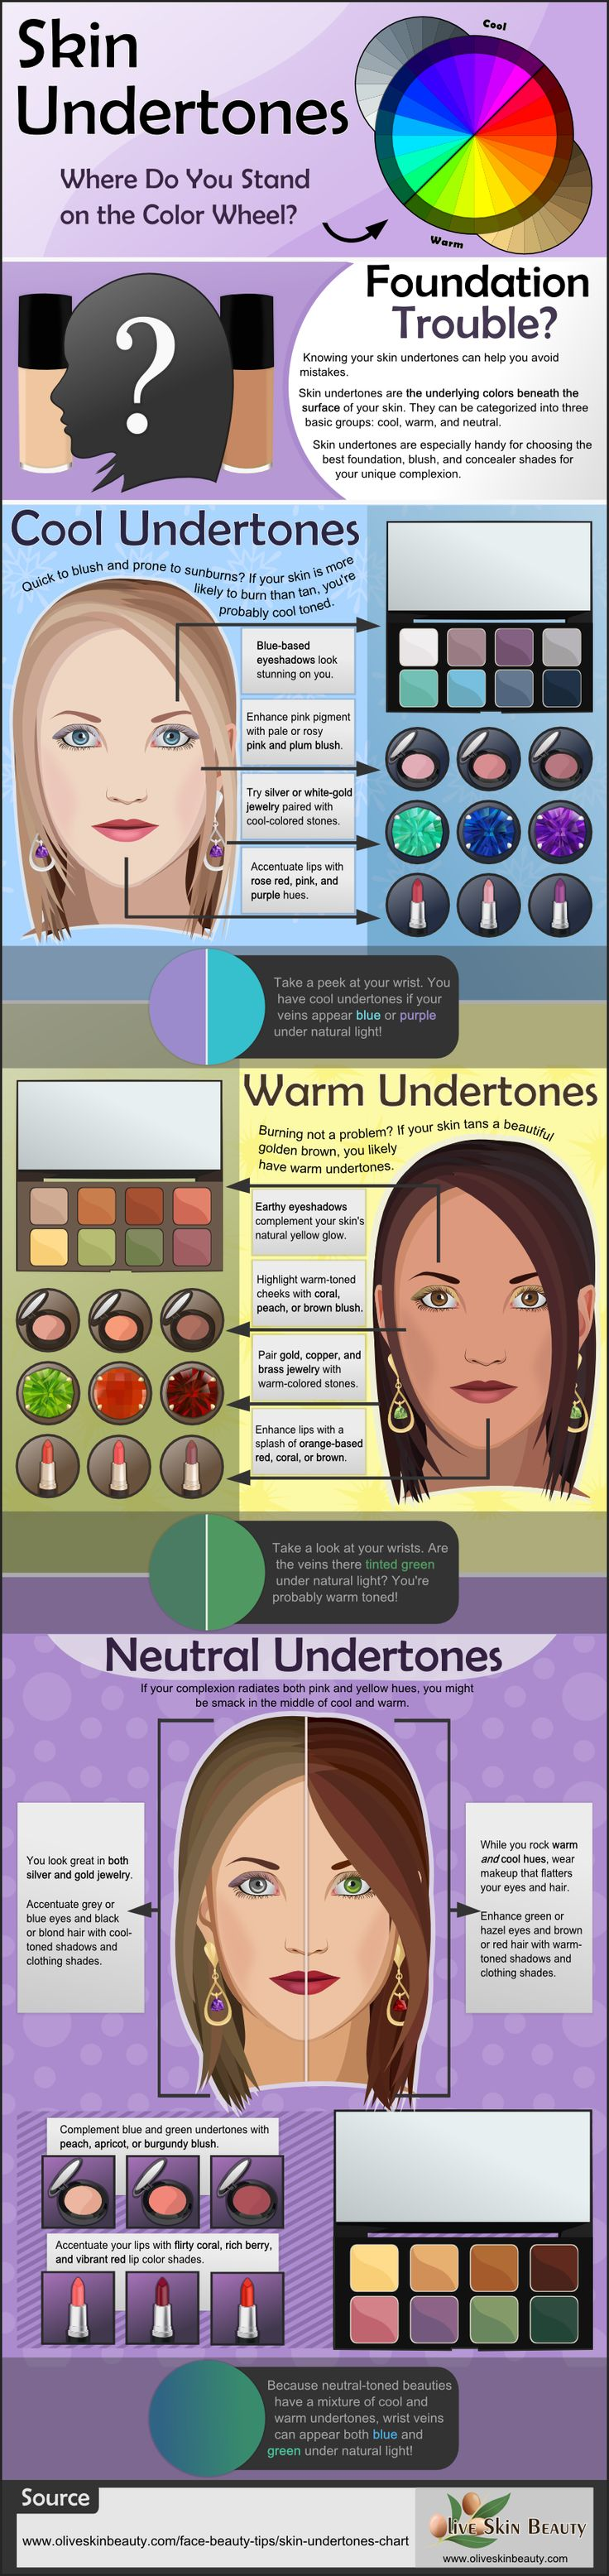 Beauty | Tipsögraphic | More beauty tips at http://www.tipsographic.com/